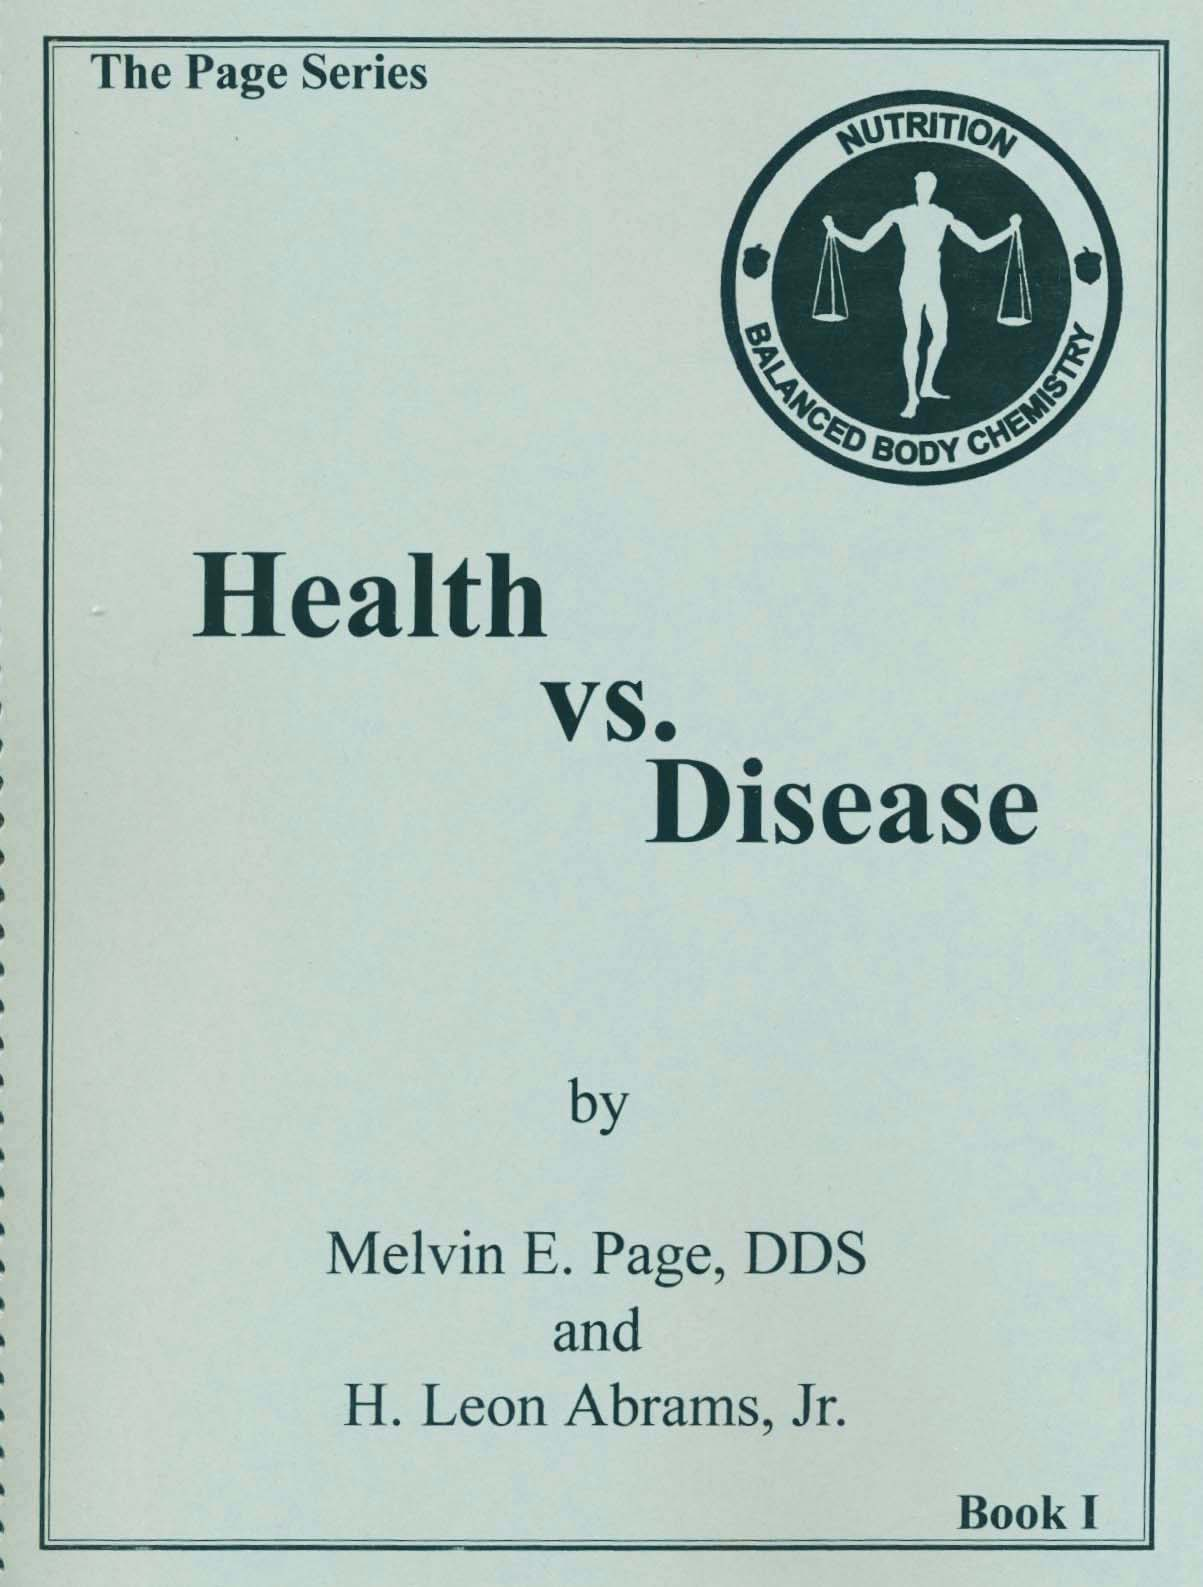 Difference Between Disease and Illness